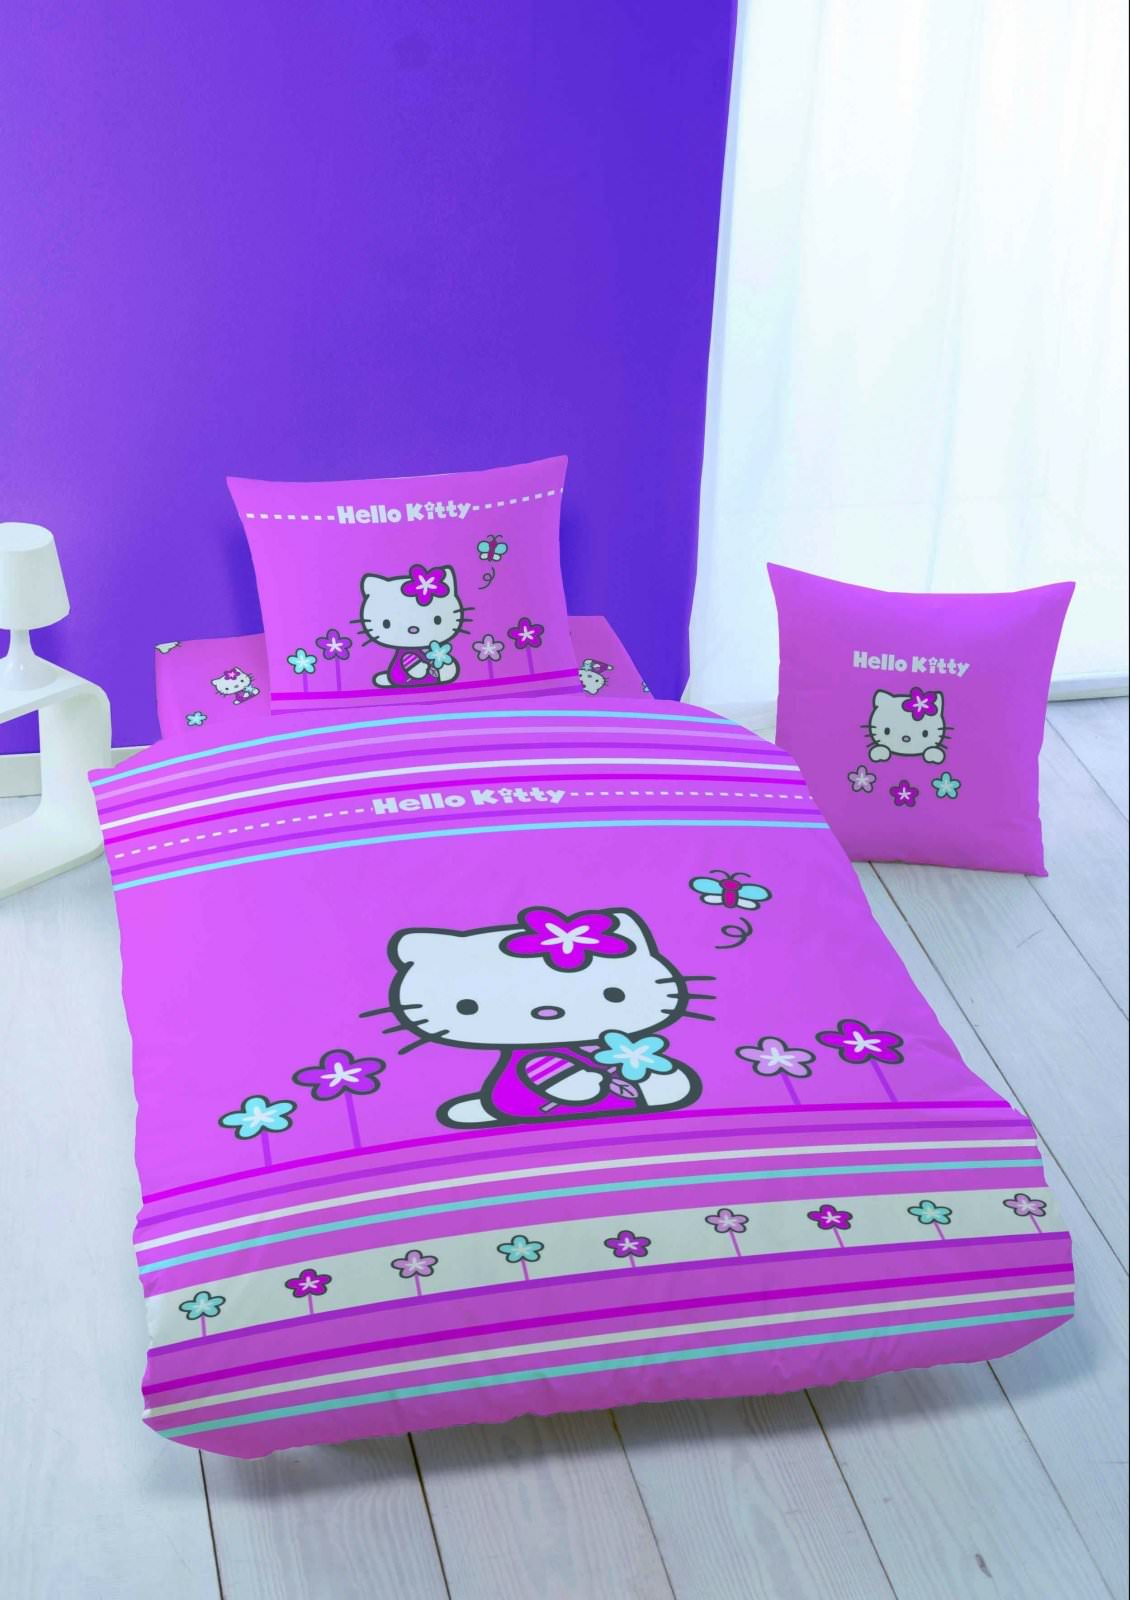 housse de couette hello kitty 140 x 200 cm parure de. Black Bedroom Furniture Sets. Home Design Ideas